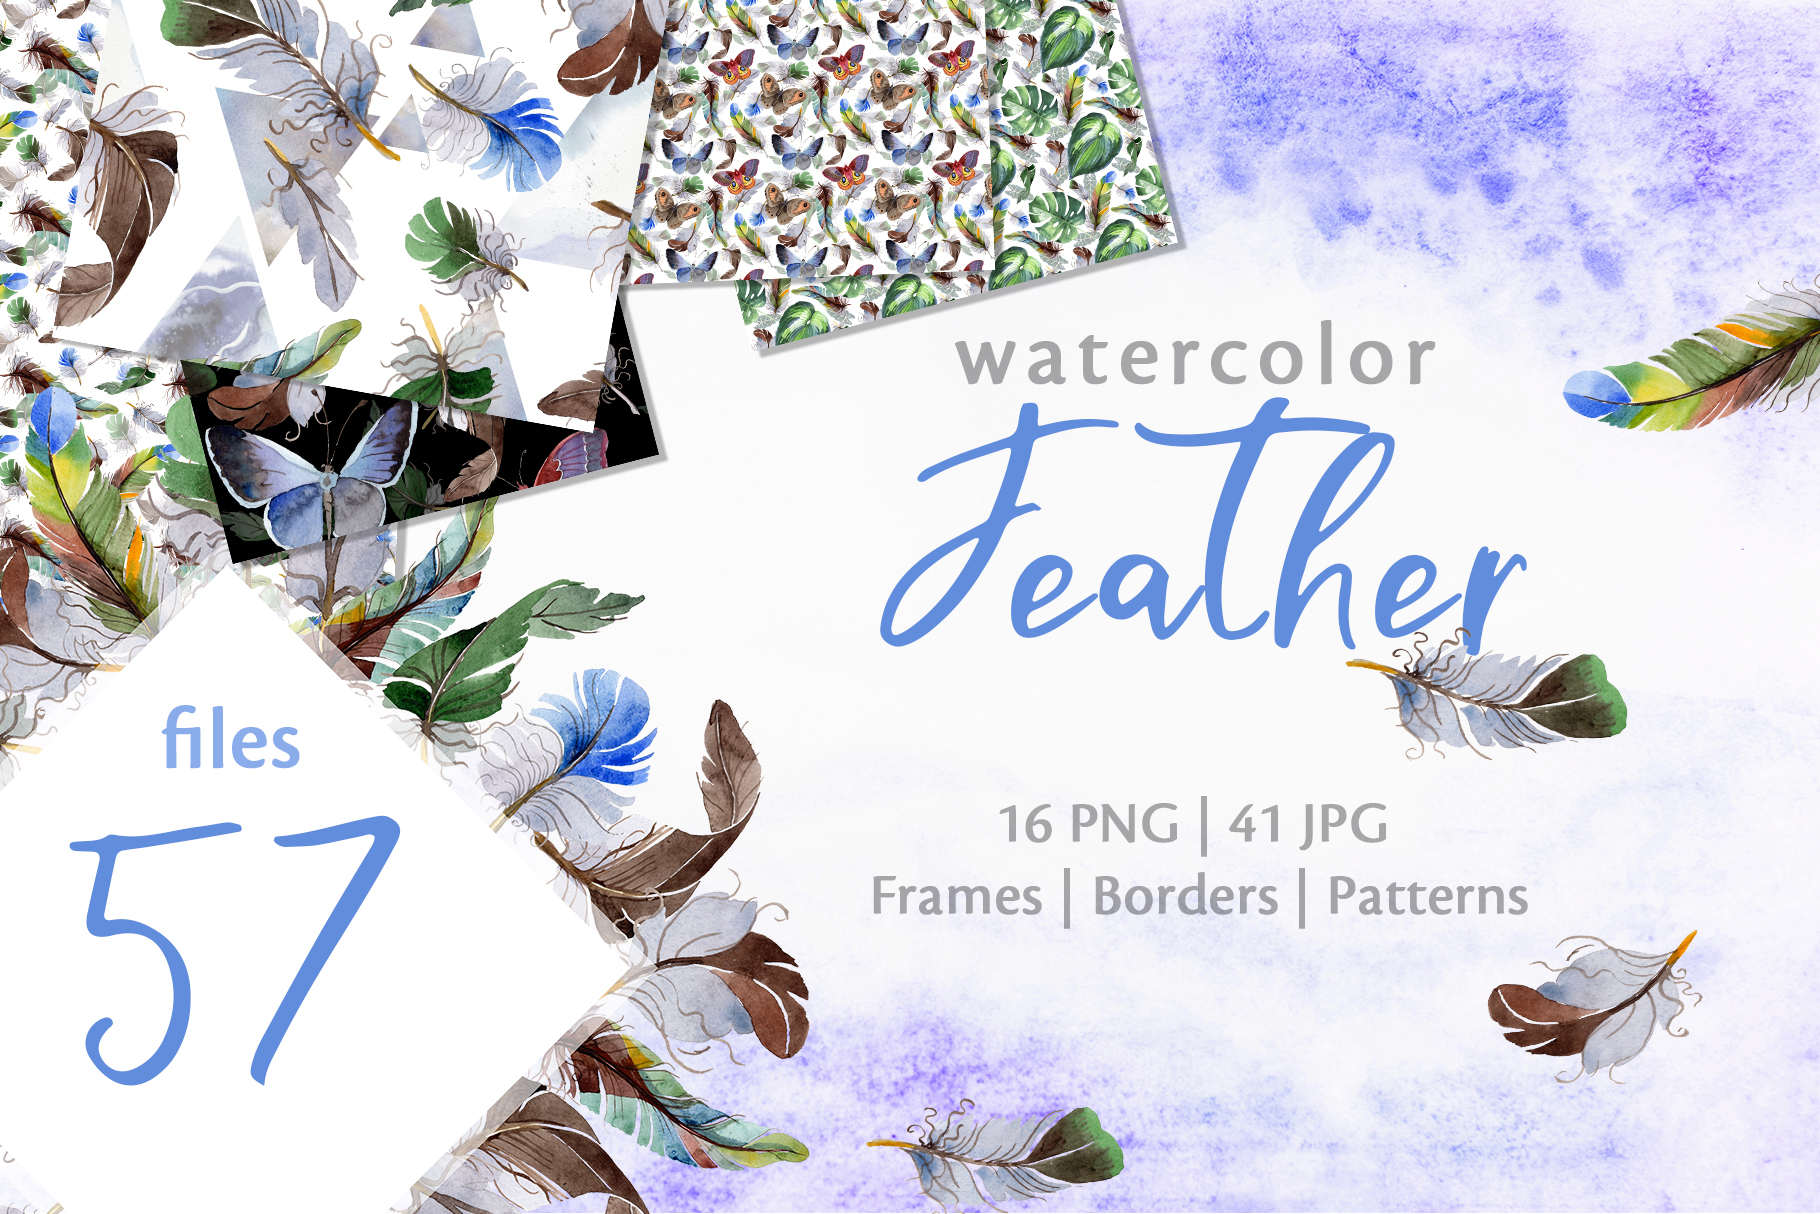 Download Free Feather Watercolor Graphic By Mystocks Creative Fabrica for Cricut Explore, Silhouette and other cutting machines.